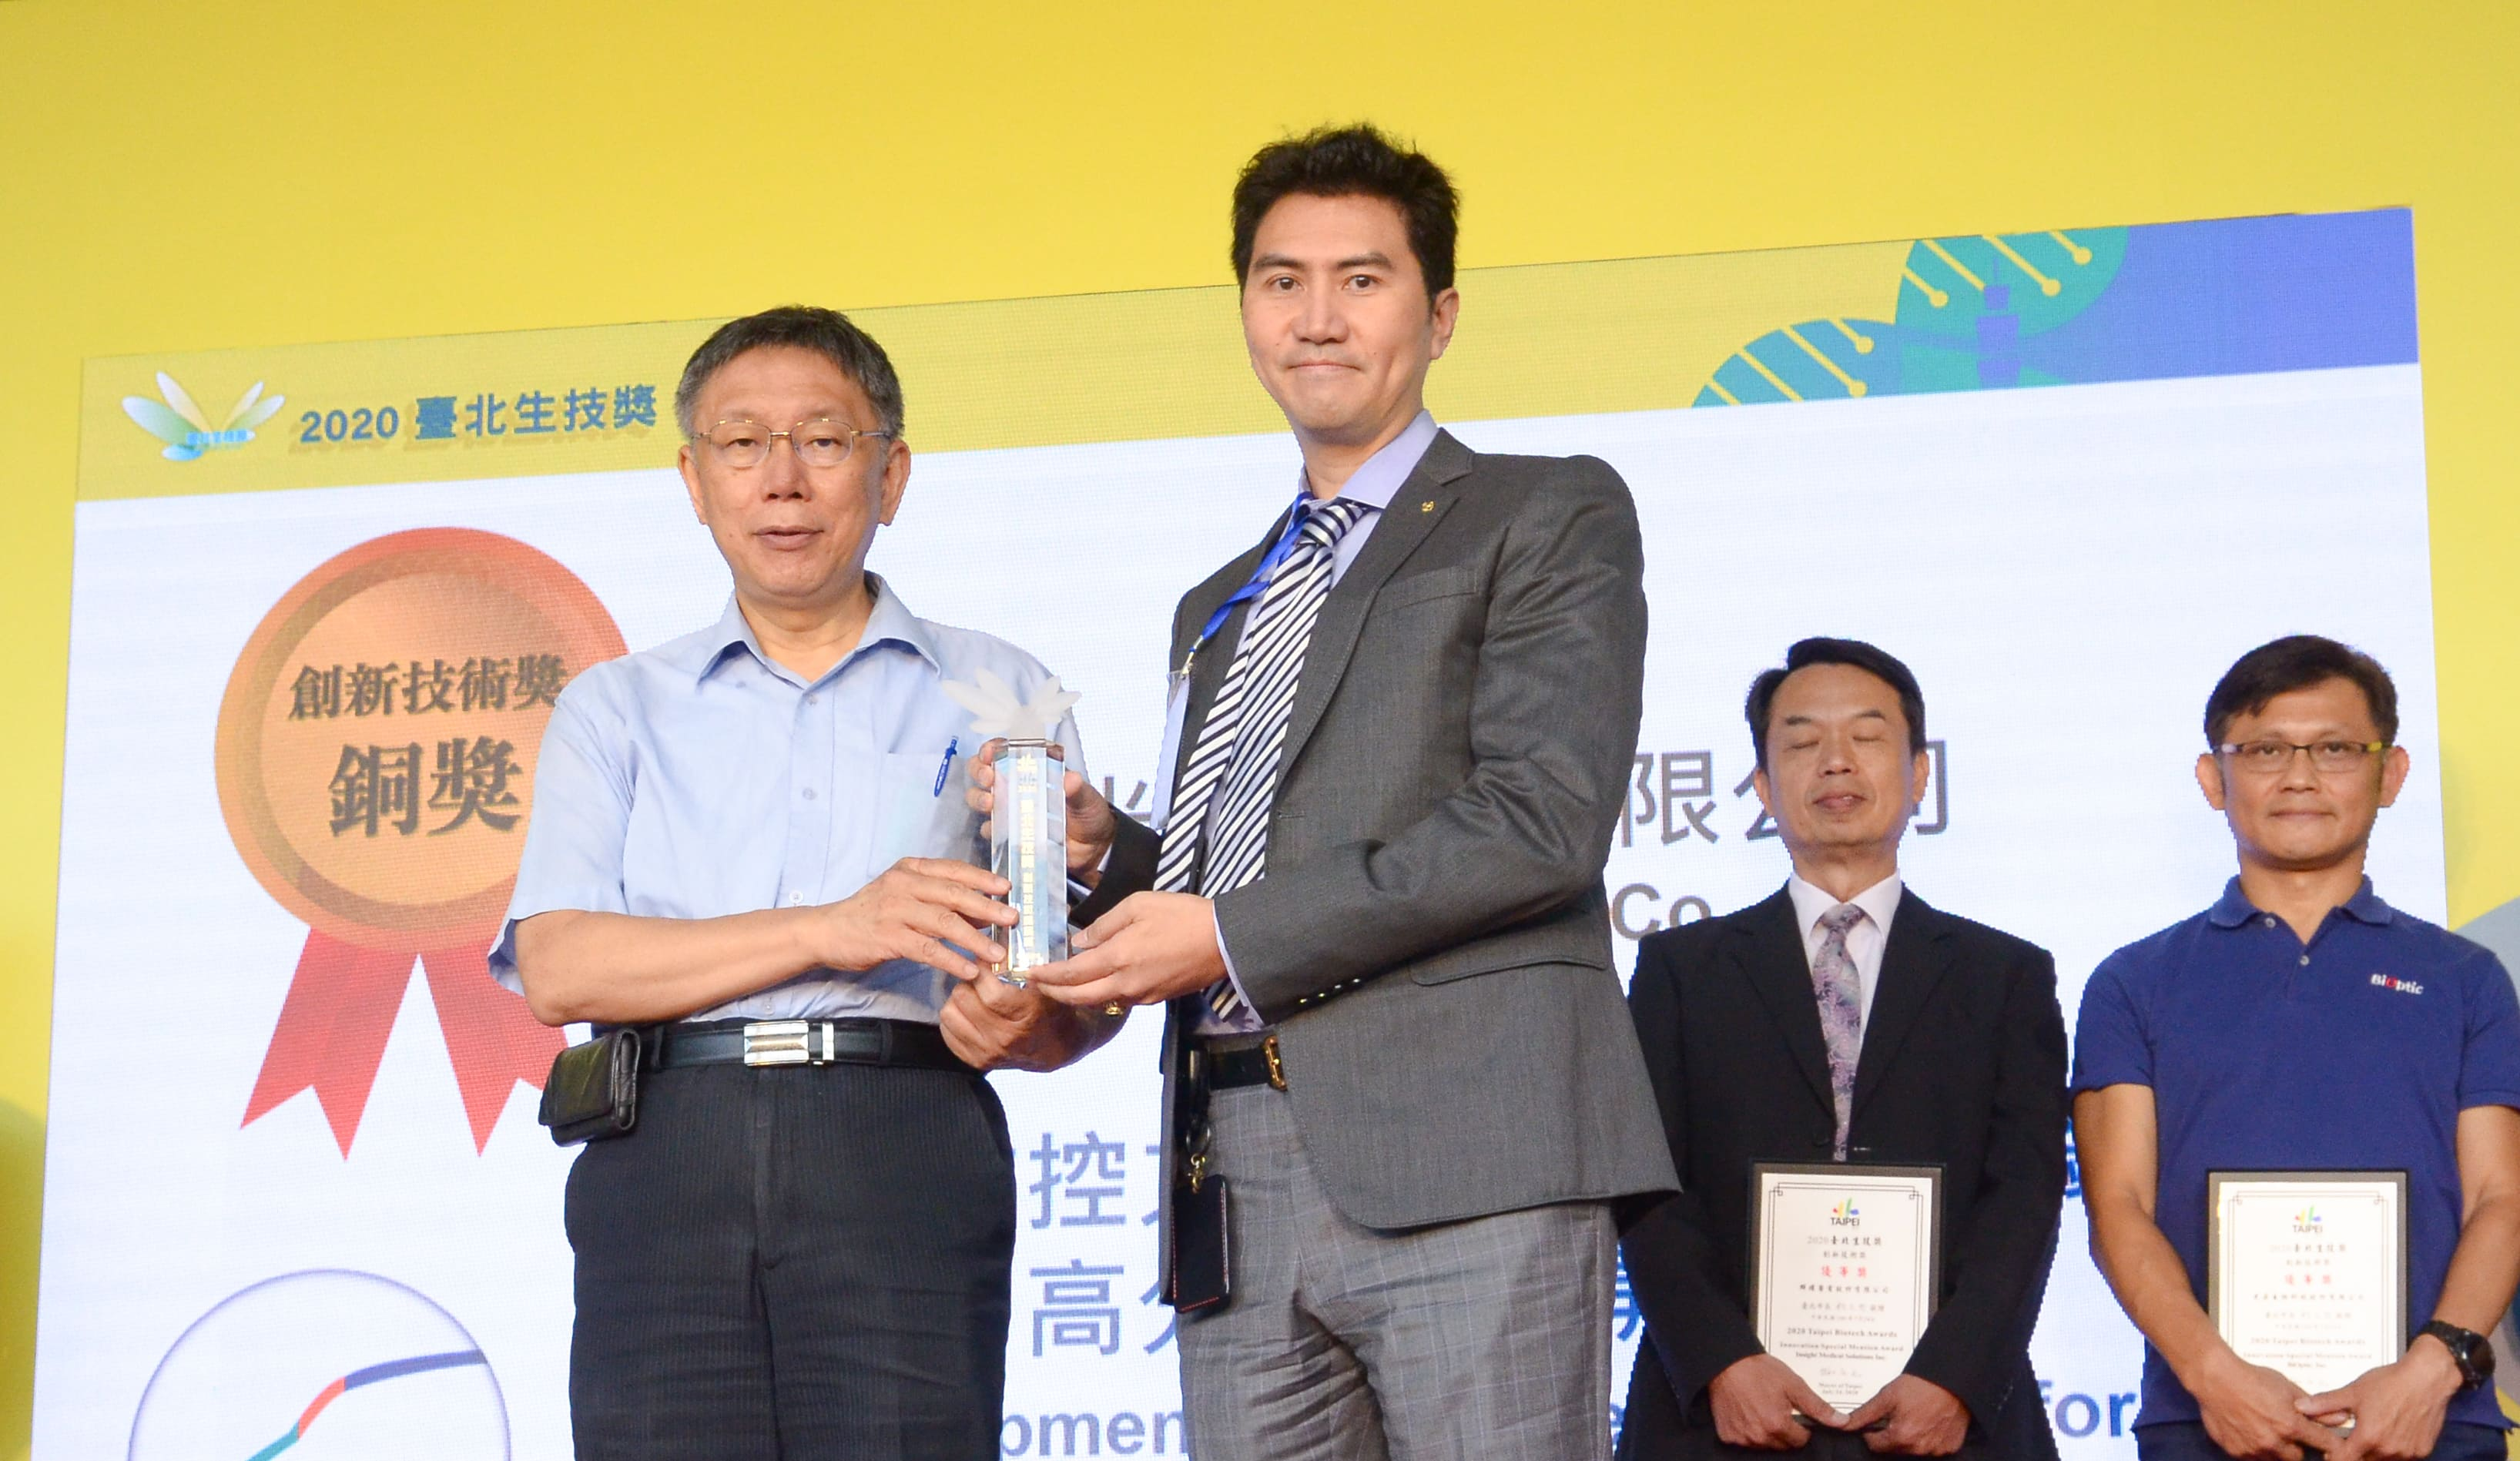 2020 Bio-tech Award  Brighten Optix won Innovative Technology Award